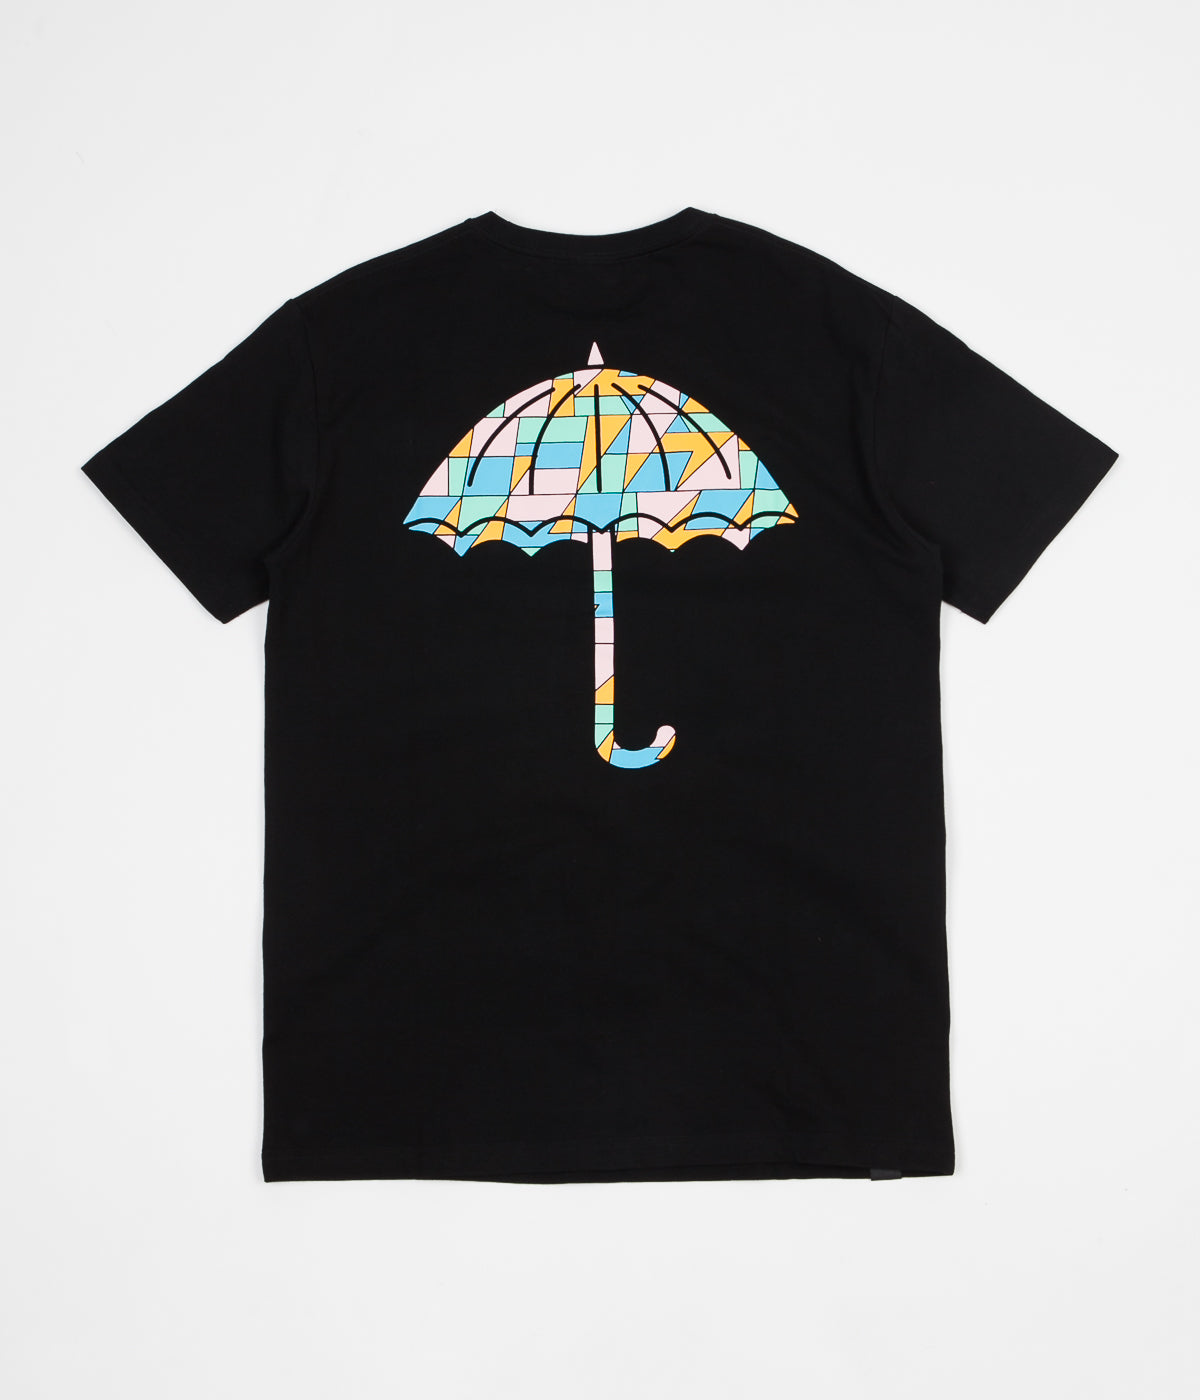 Helas Umbrella Mosaic T-Shirt - Black